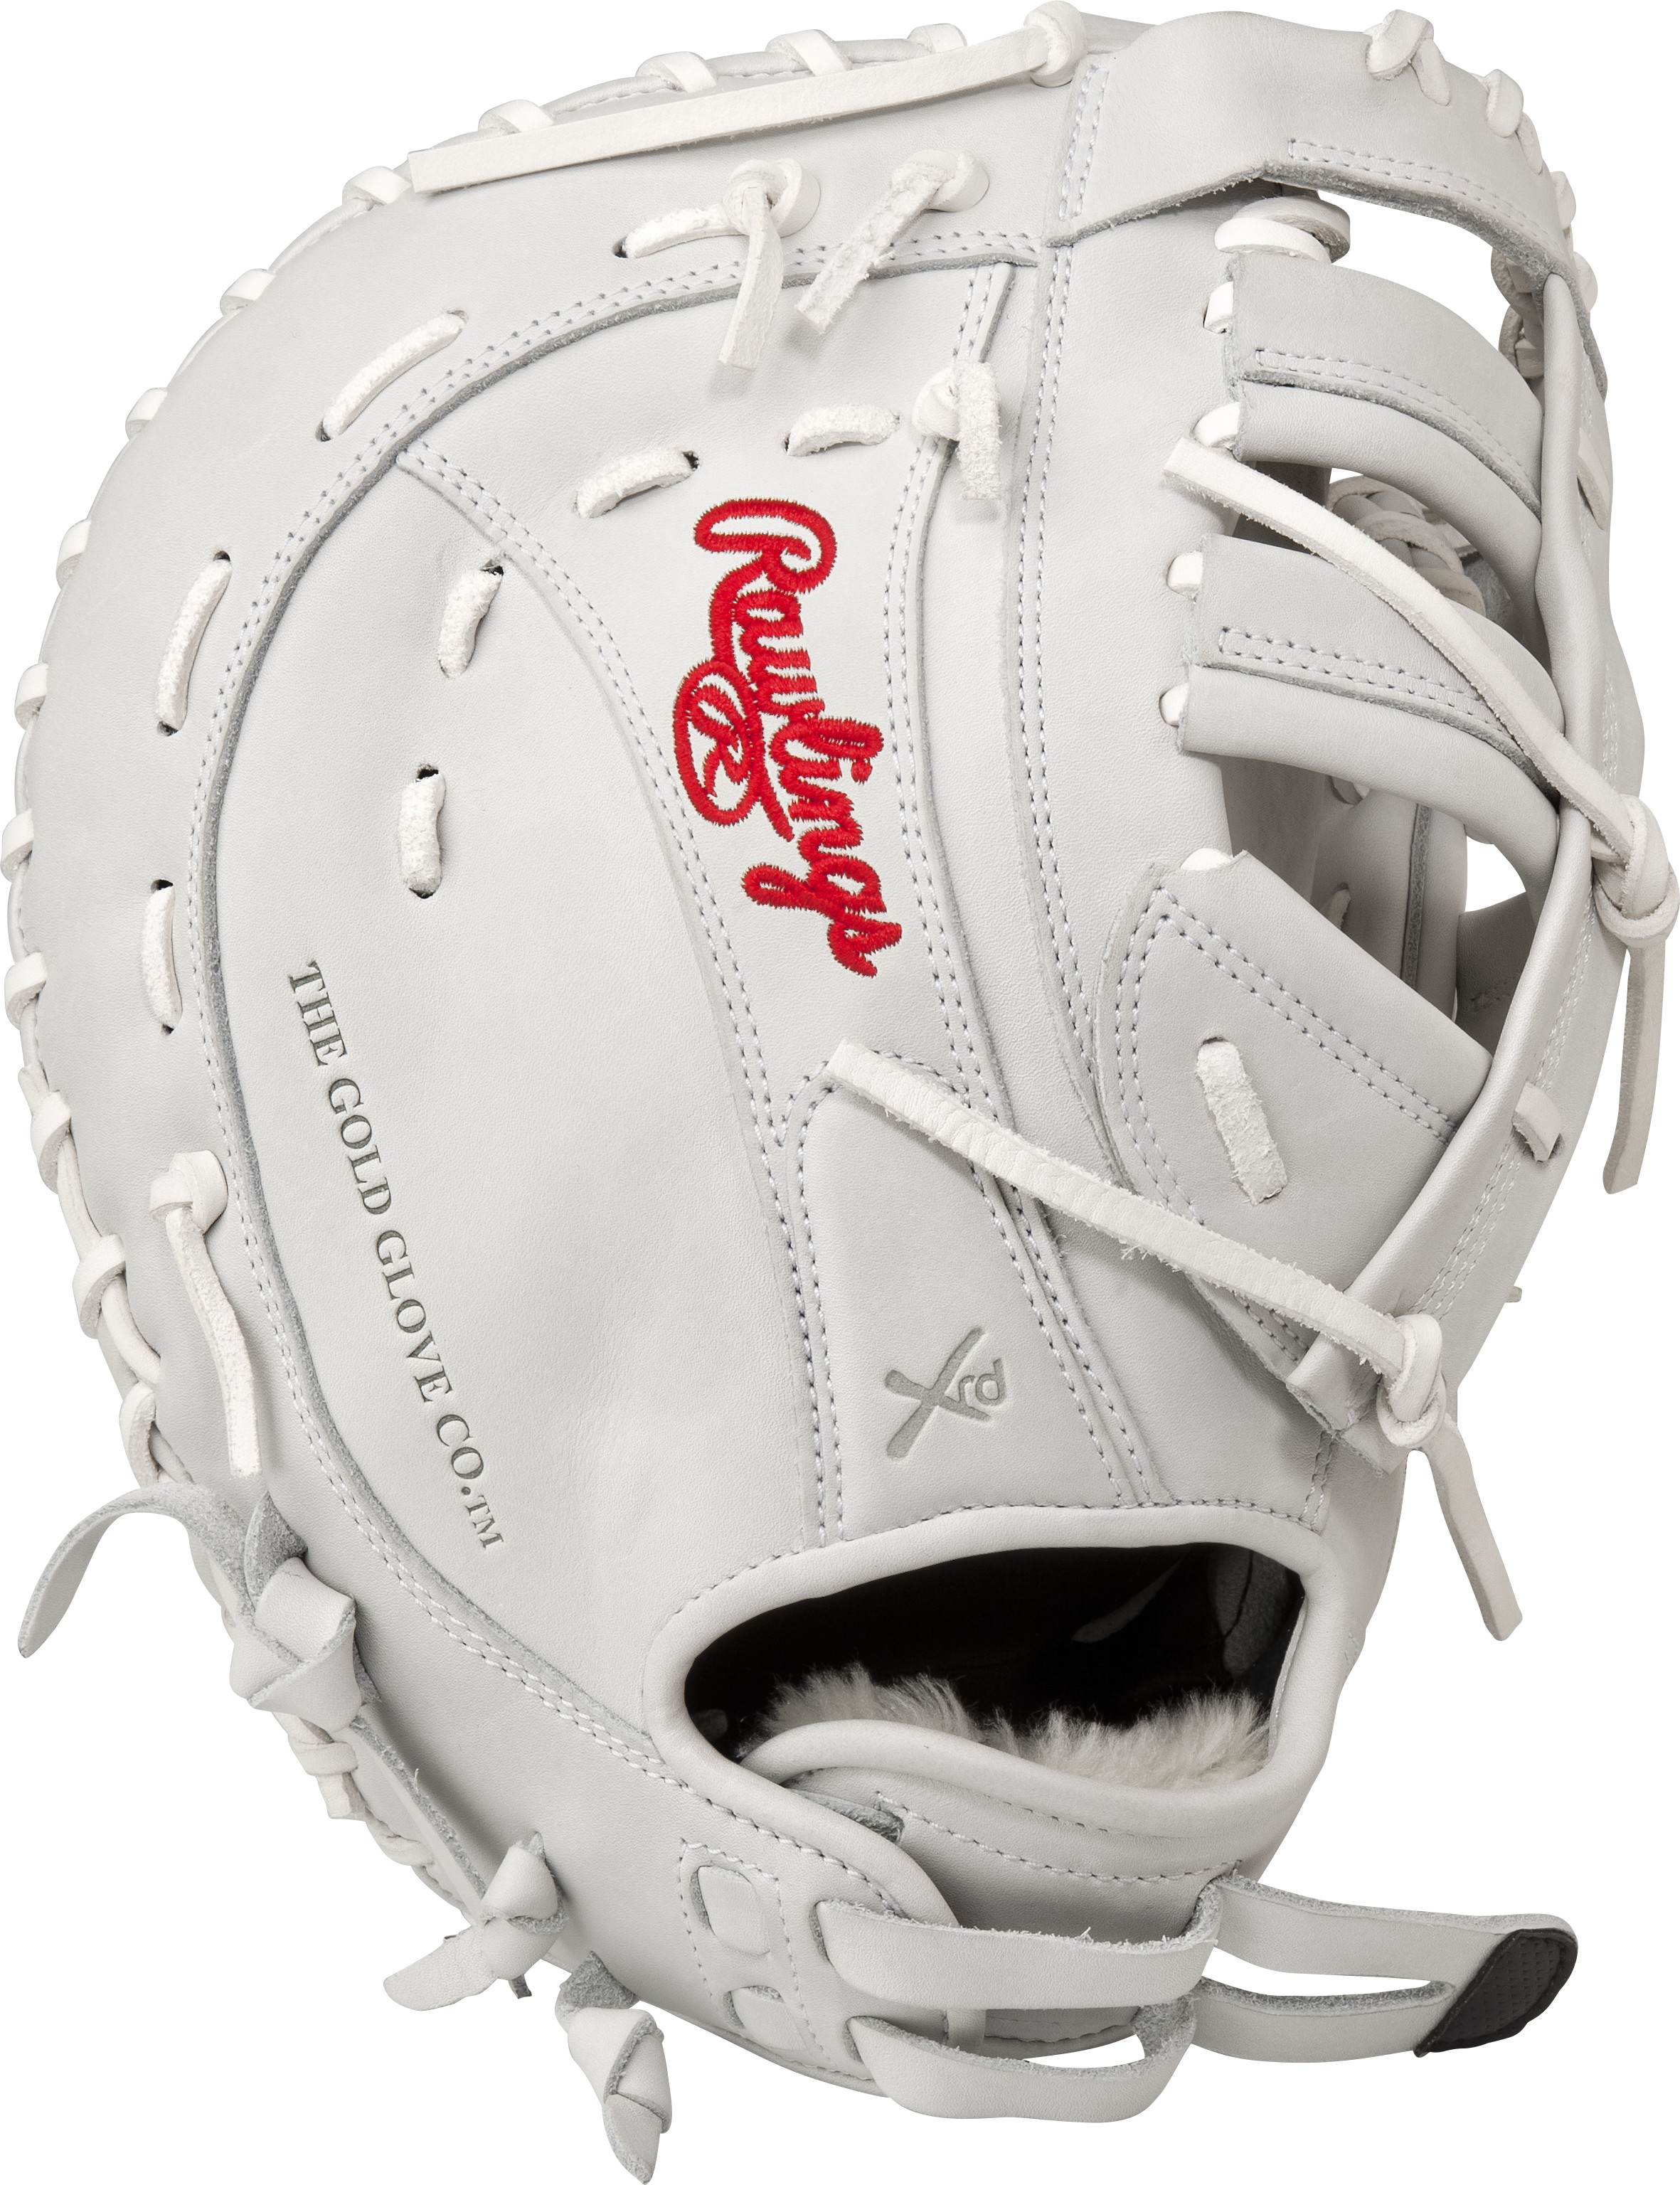 http://www.bestbatdeals.com/images/gloves/rawlings/RLAFB_back.jpg